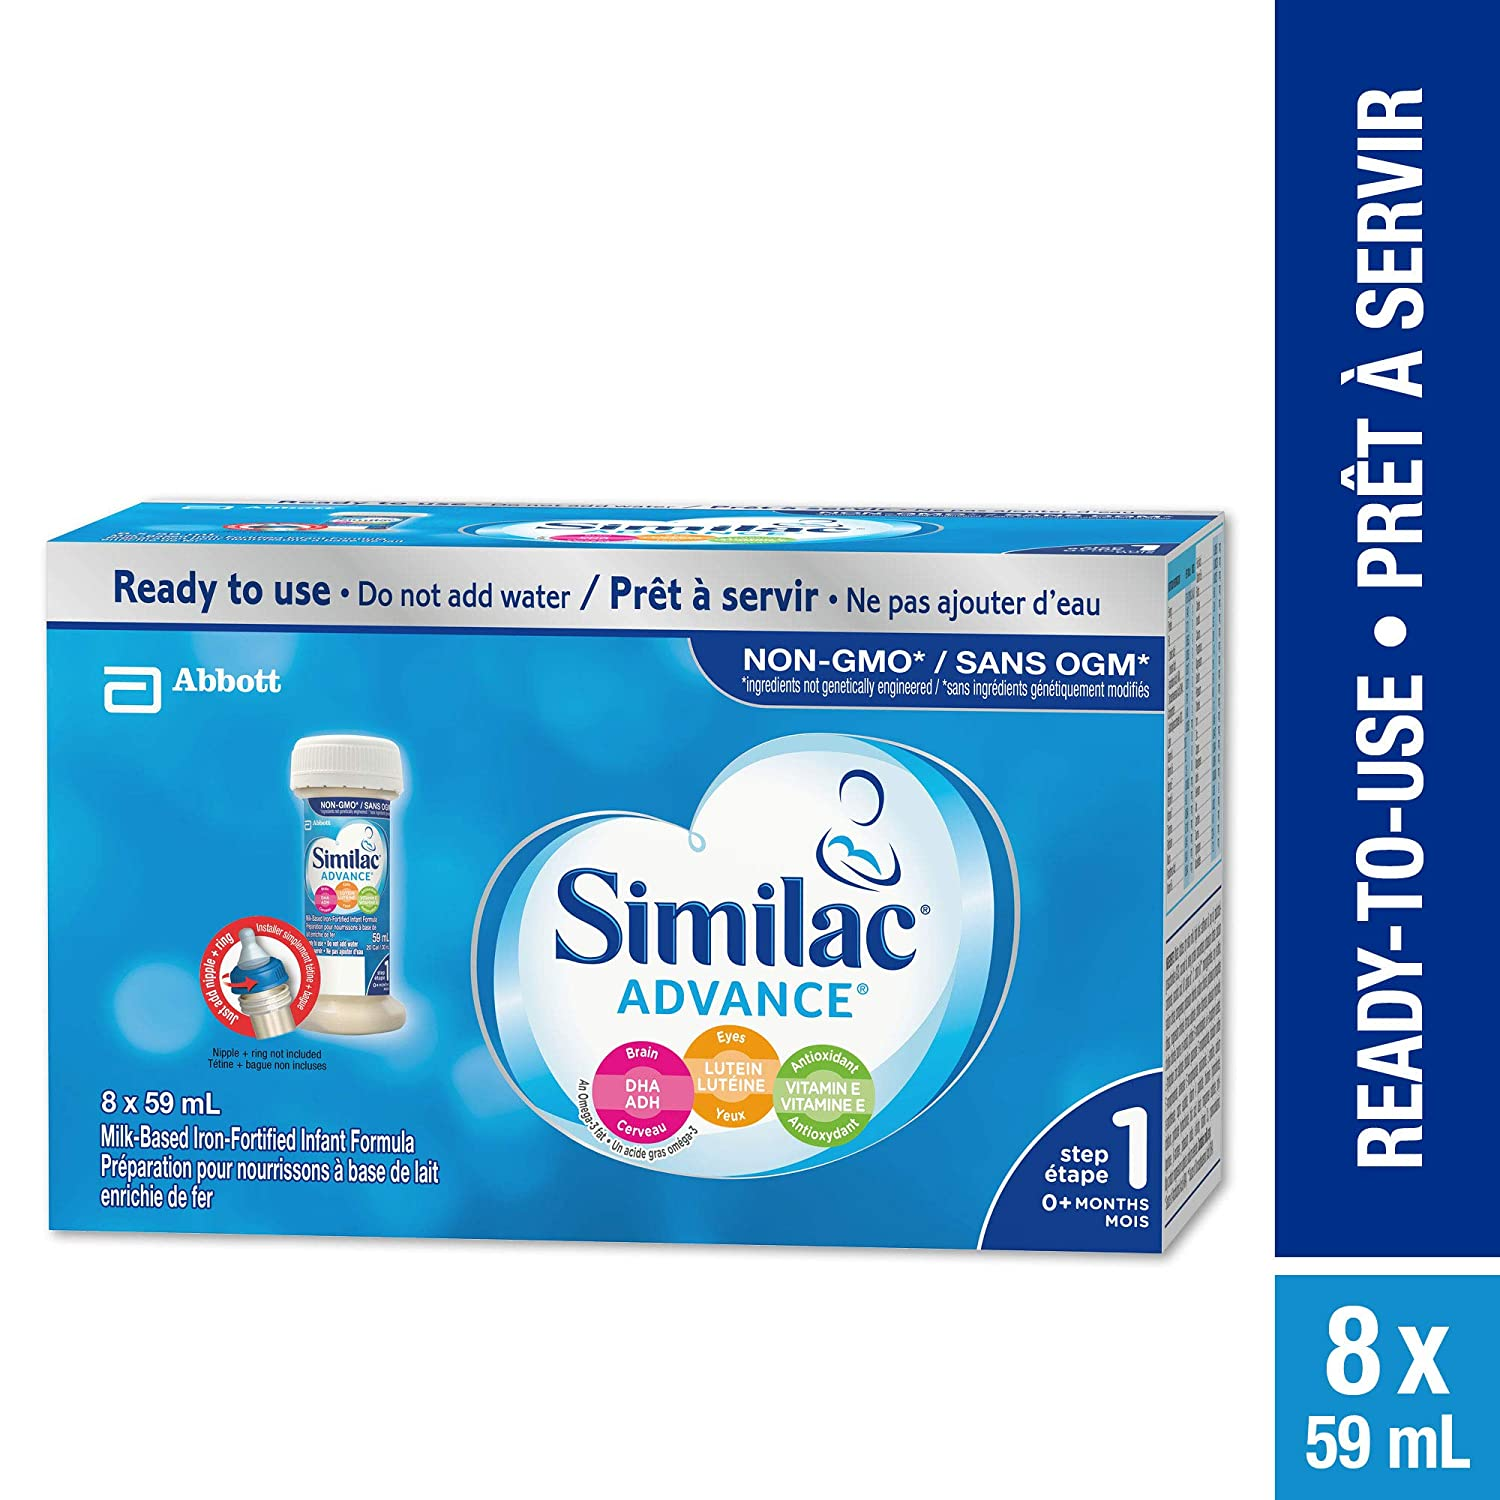 Similac Advance Step 1 Infant Formula, Ready to feed Nursette Bottles Abbott Laboratories